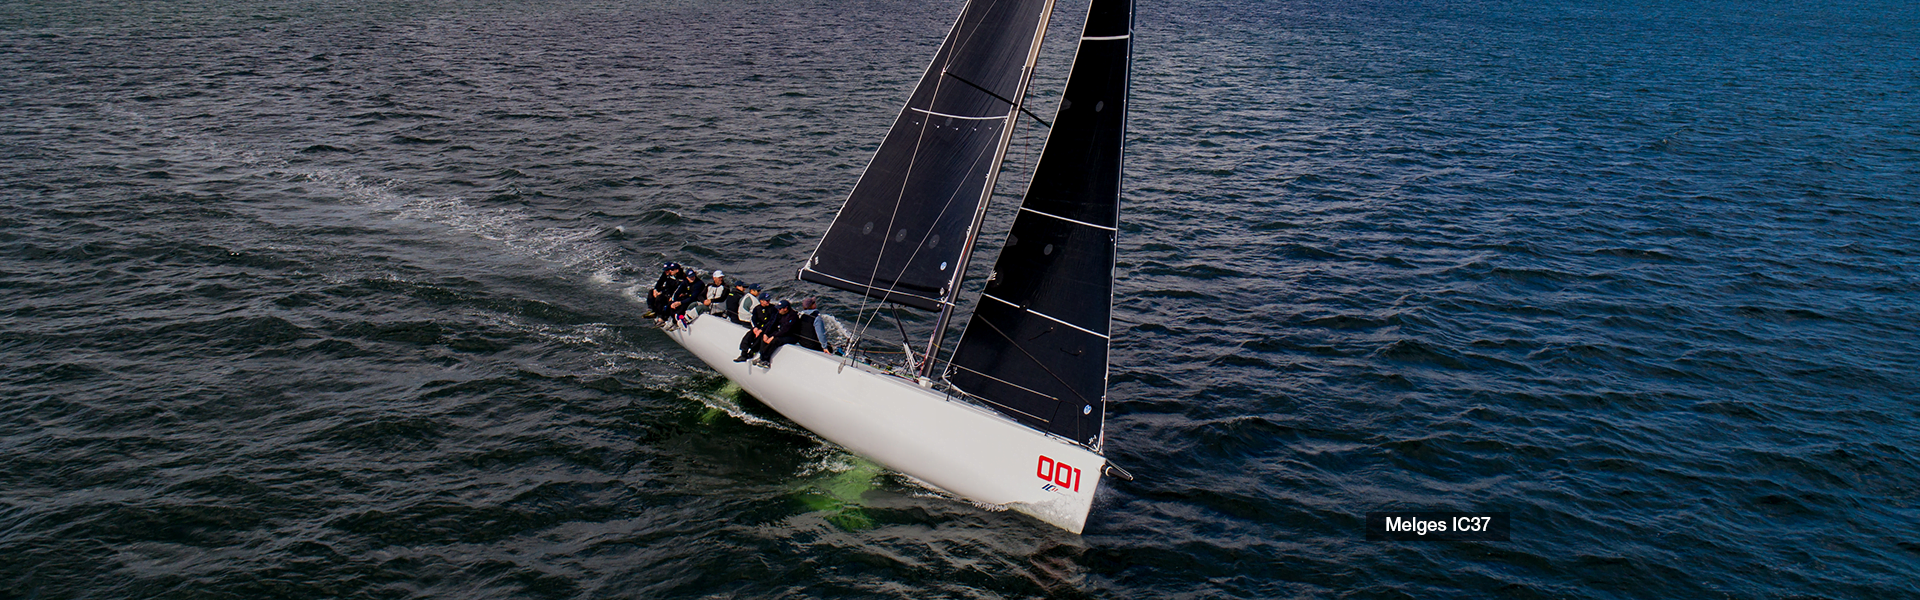 YMI Engines Melges iC37